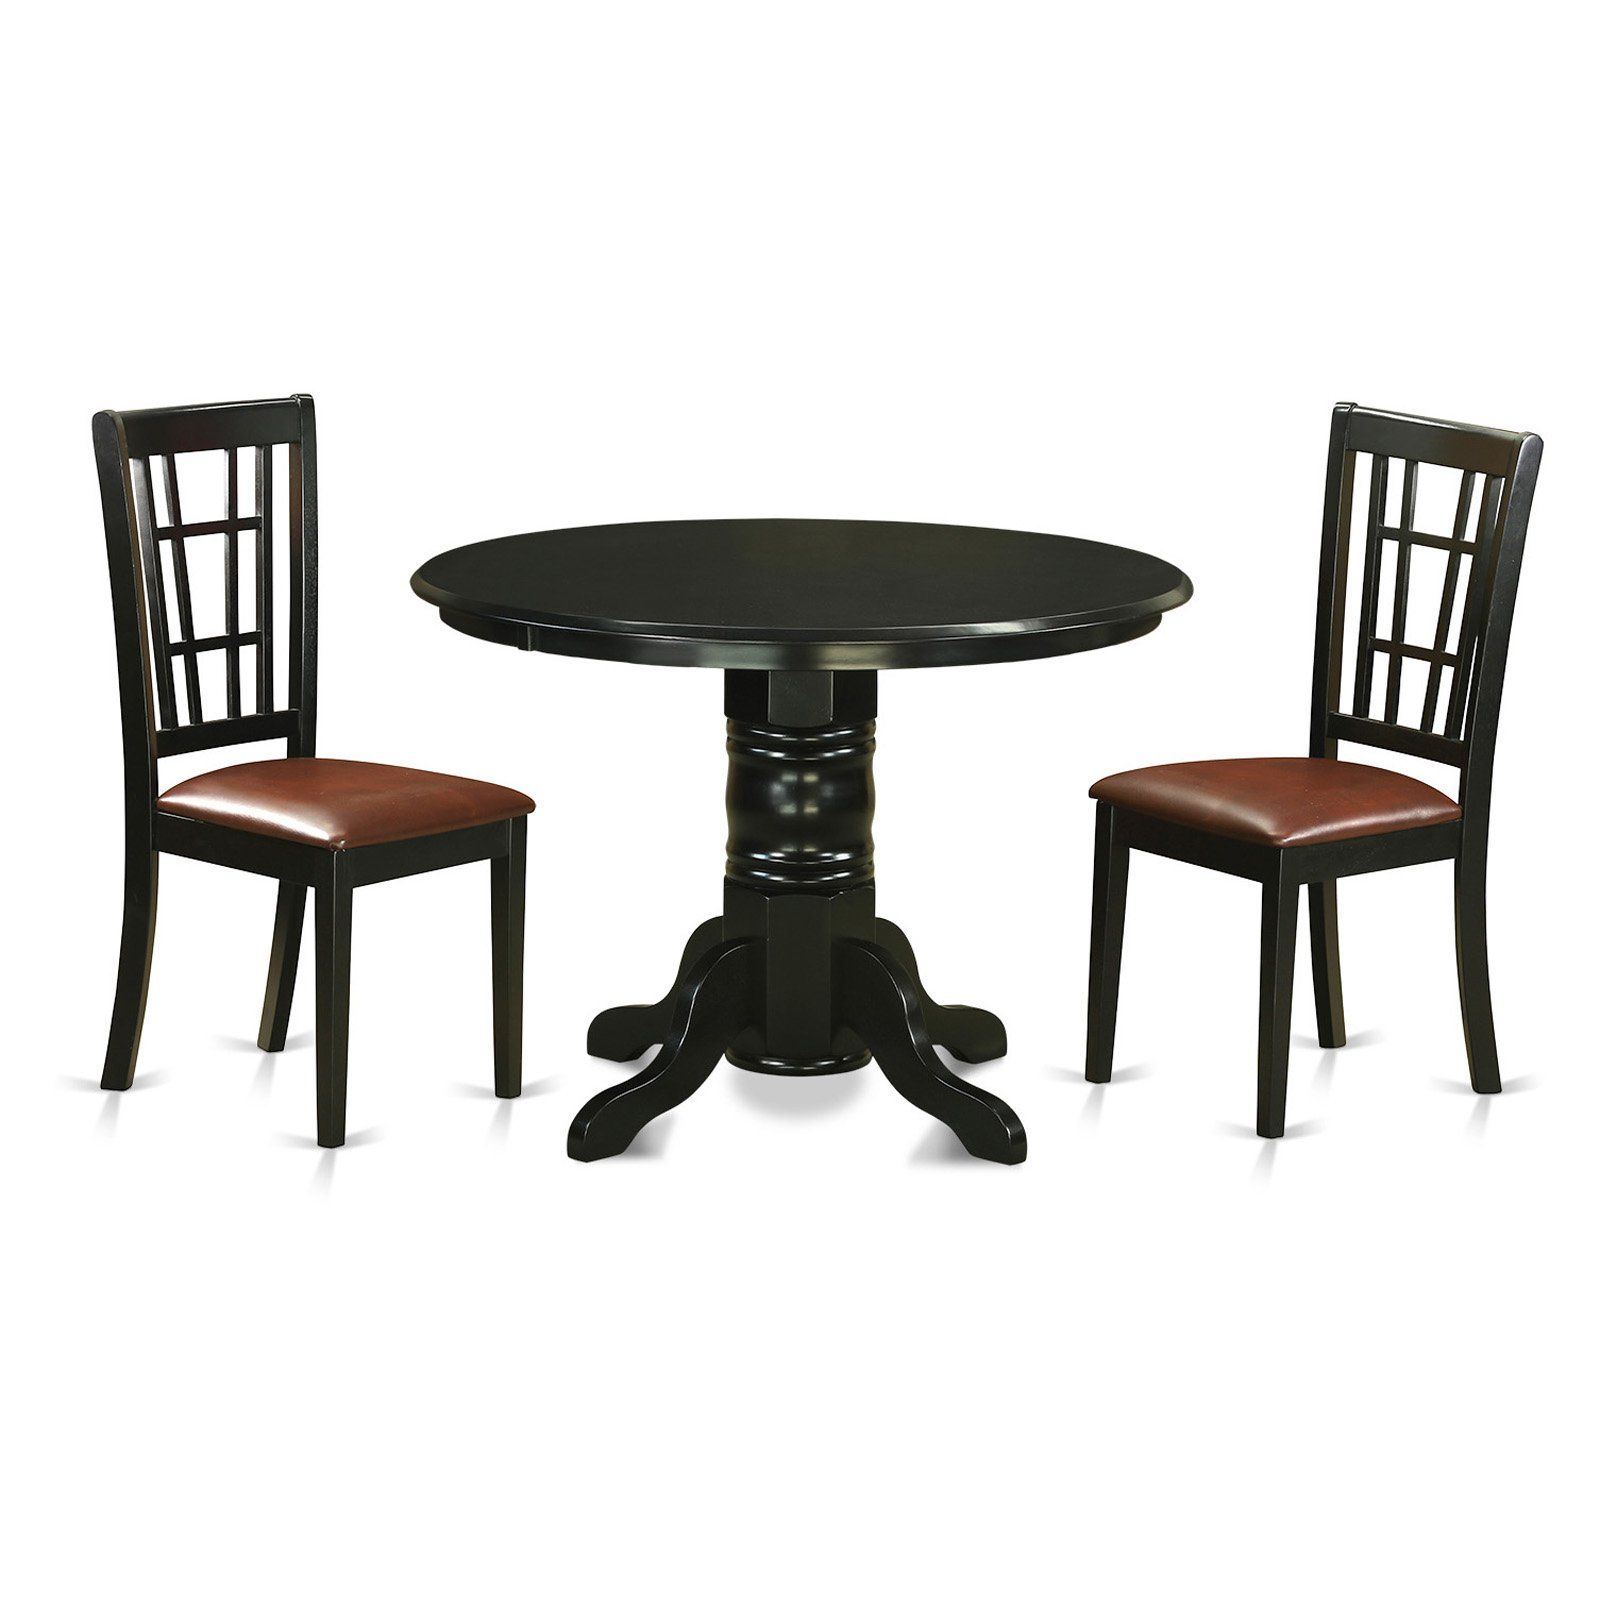 East West Furniture Shelton 3 Piece Windowpane Dining Table Set In 2021 Round Dining Table Sets Solid Wood Dining Set Kitchen Table Settings 3 piece dining set under 100